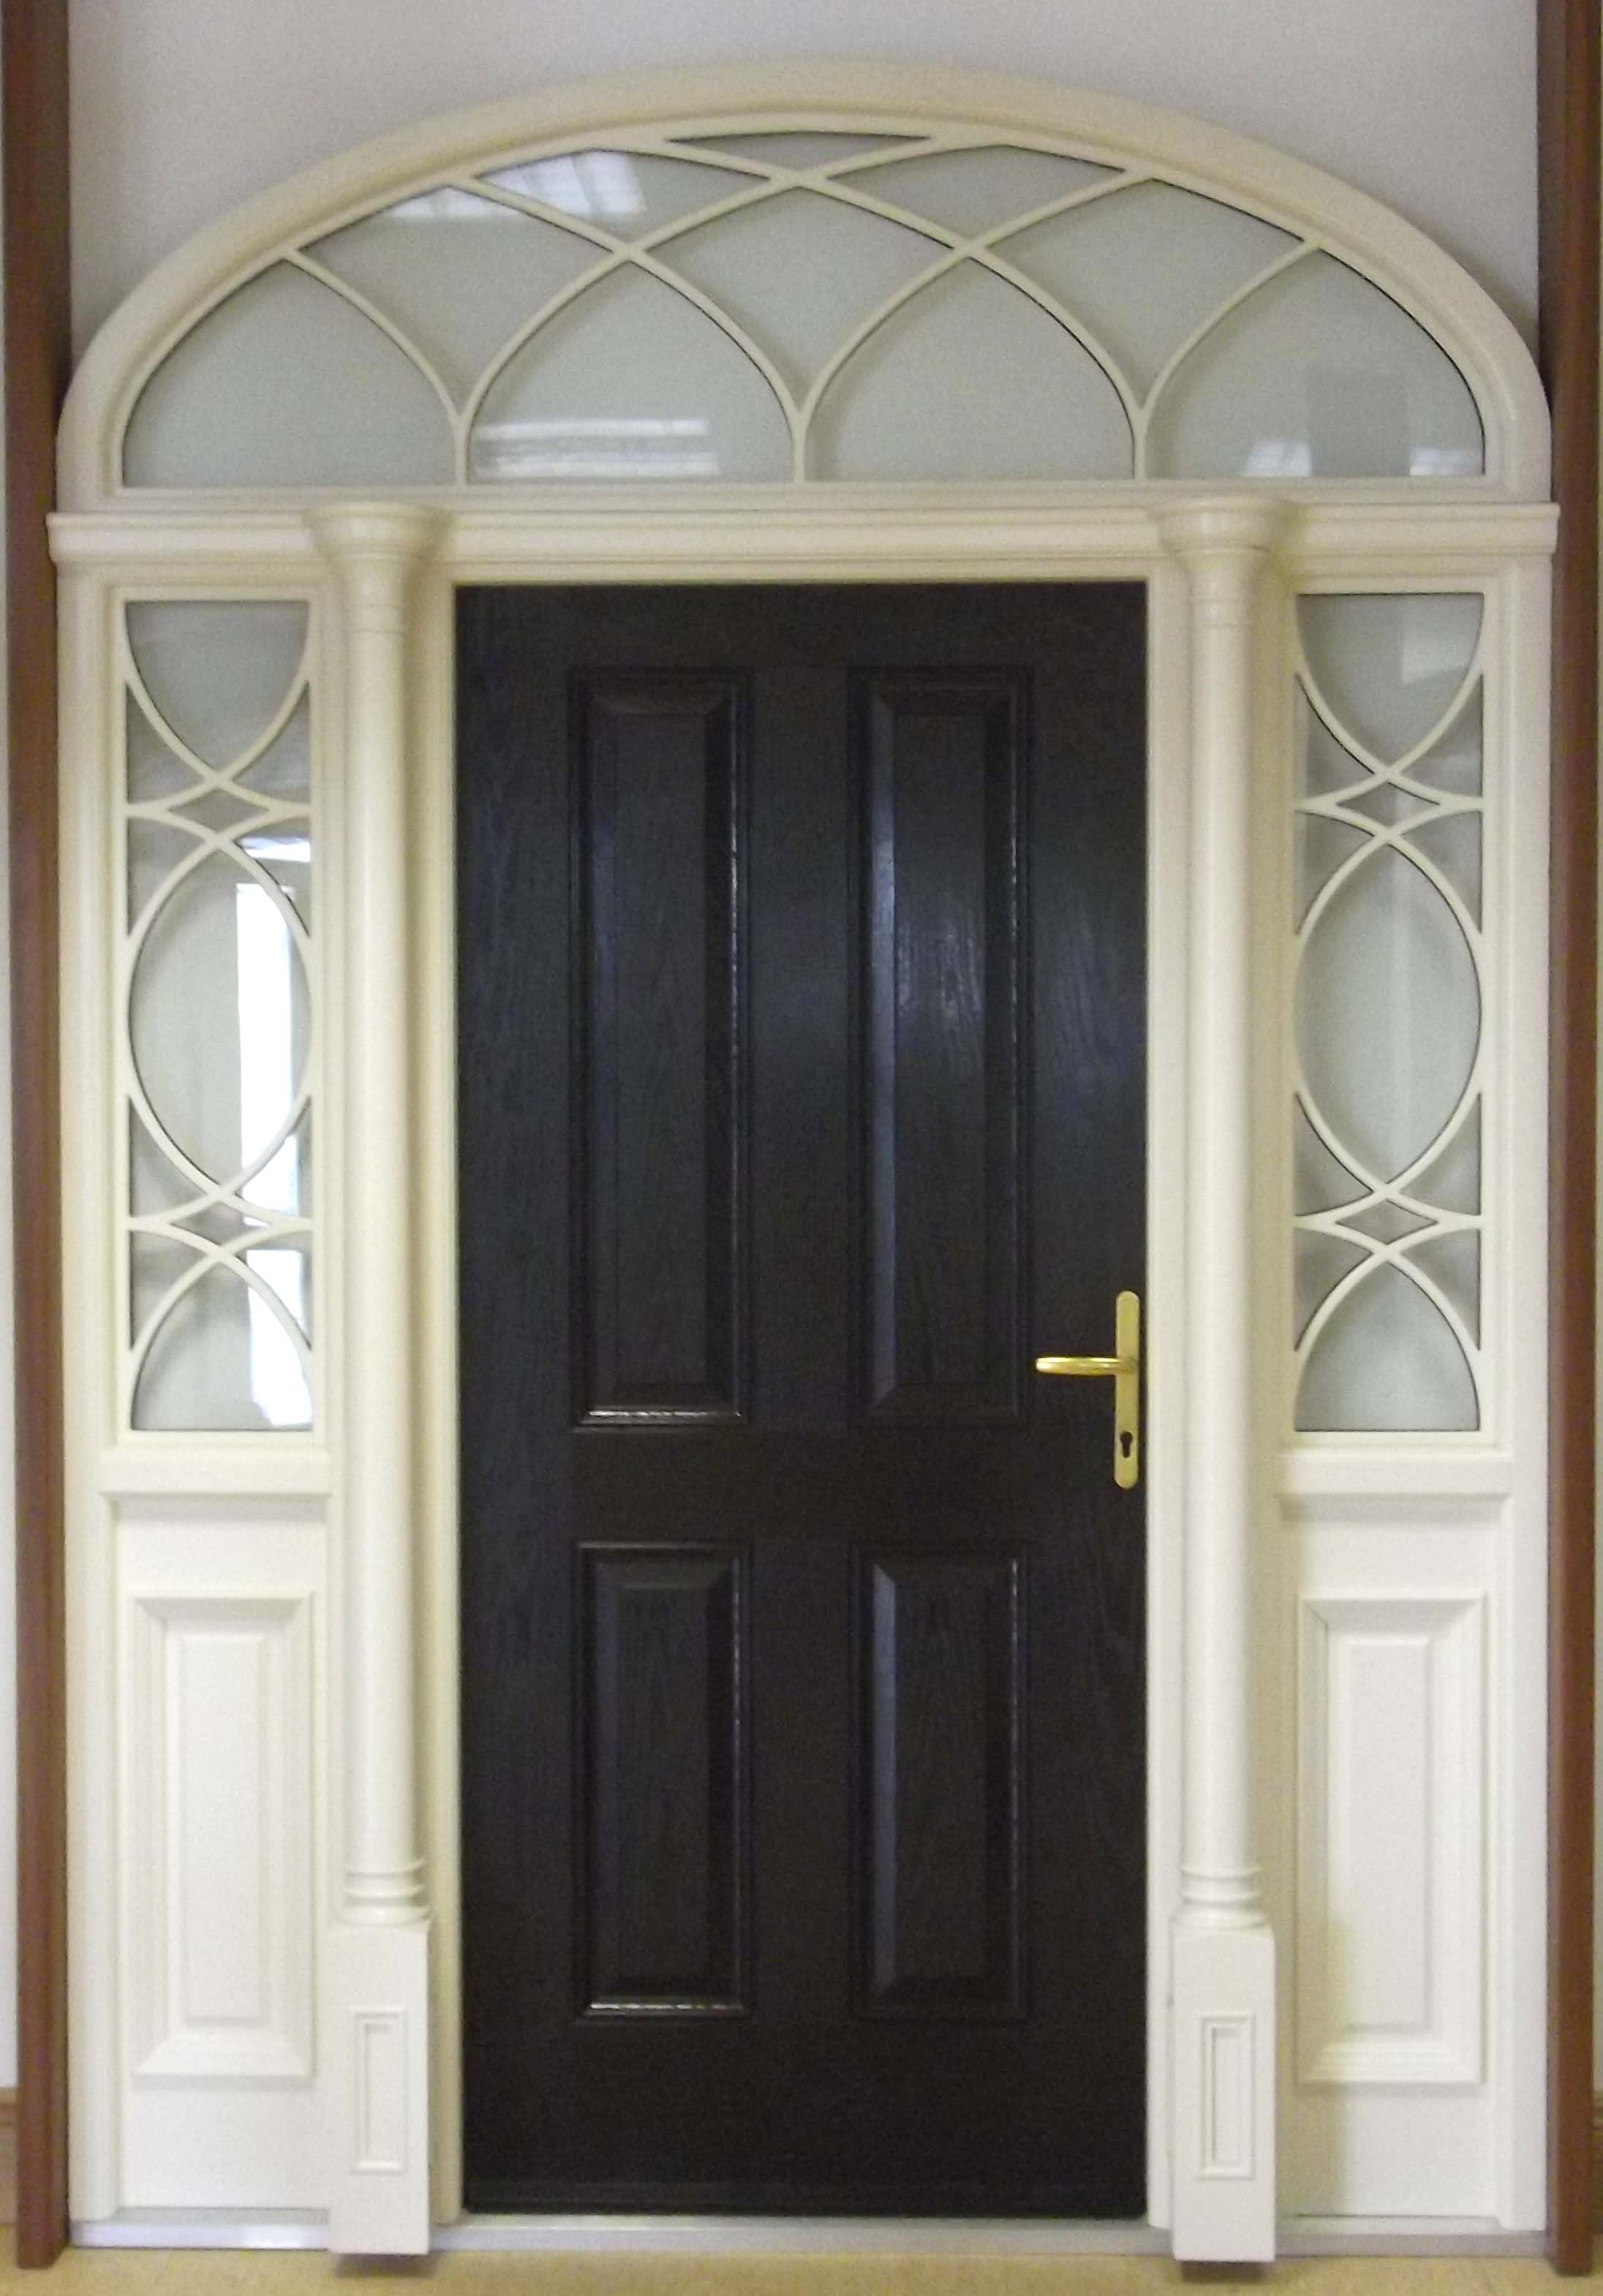 manufactured with natural hardwood the door frame features two column pillars with dentil moulding at the top of the door sash the sidelights and top fan - Door Frame Fan